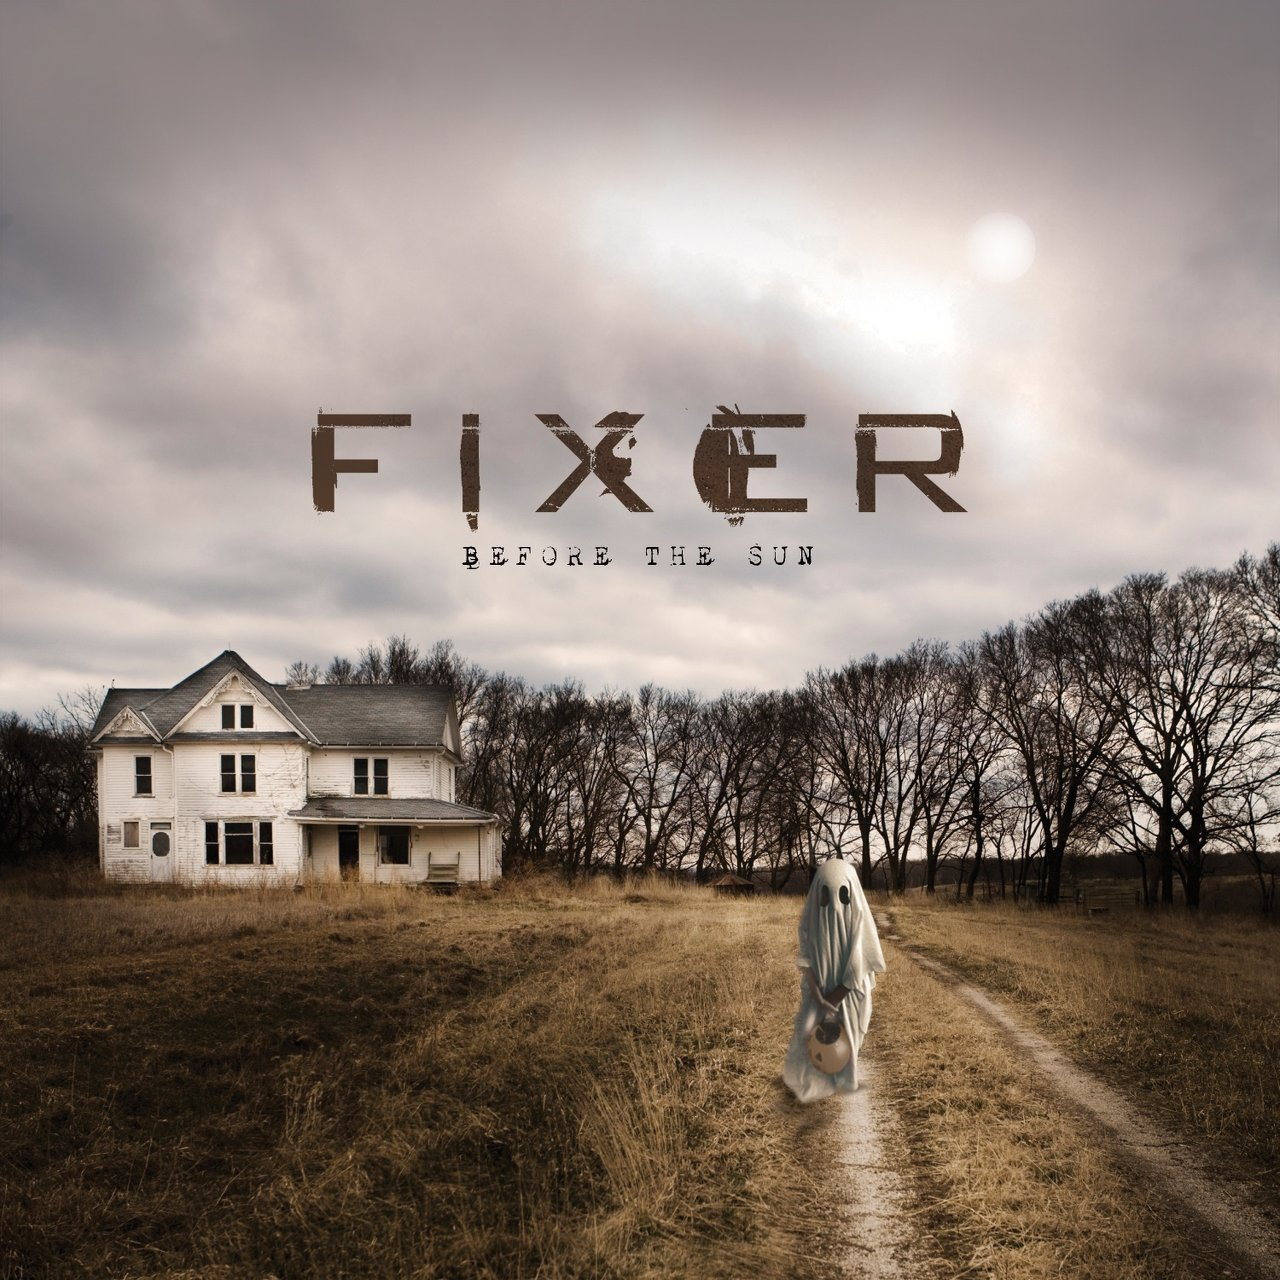 Fixer - Before The Sun